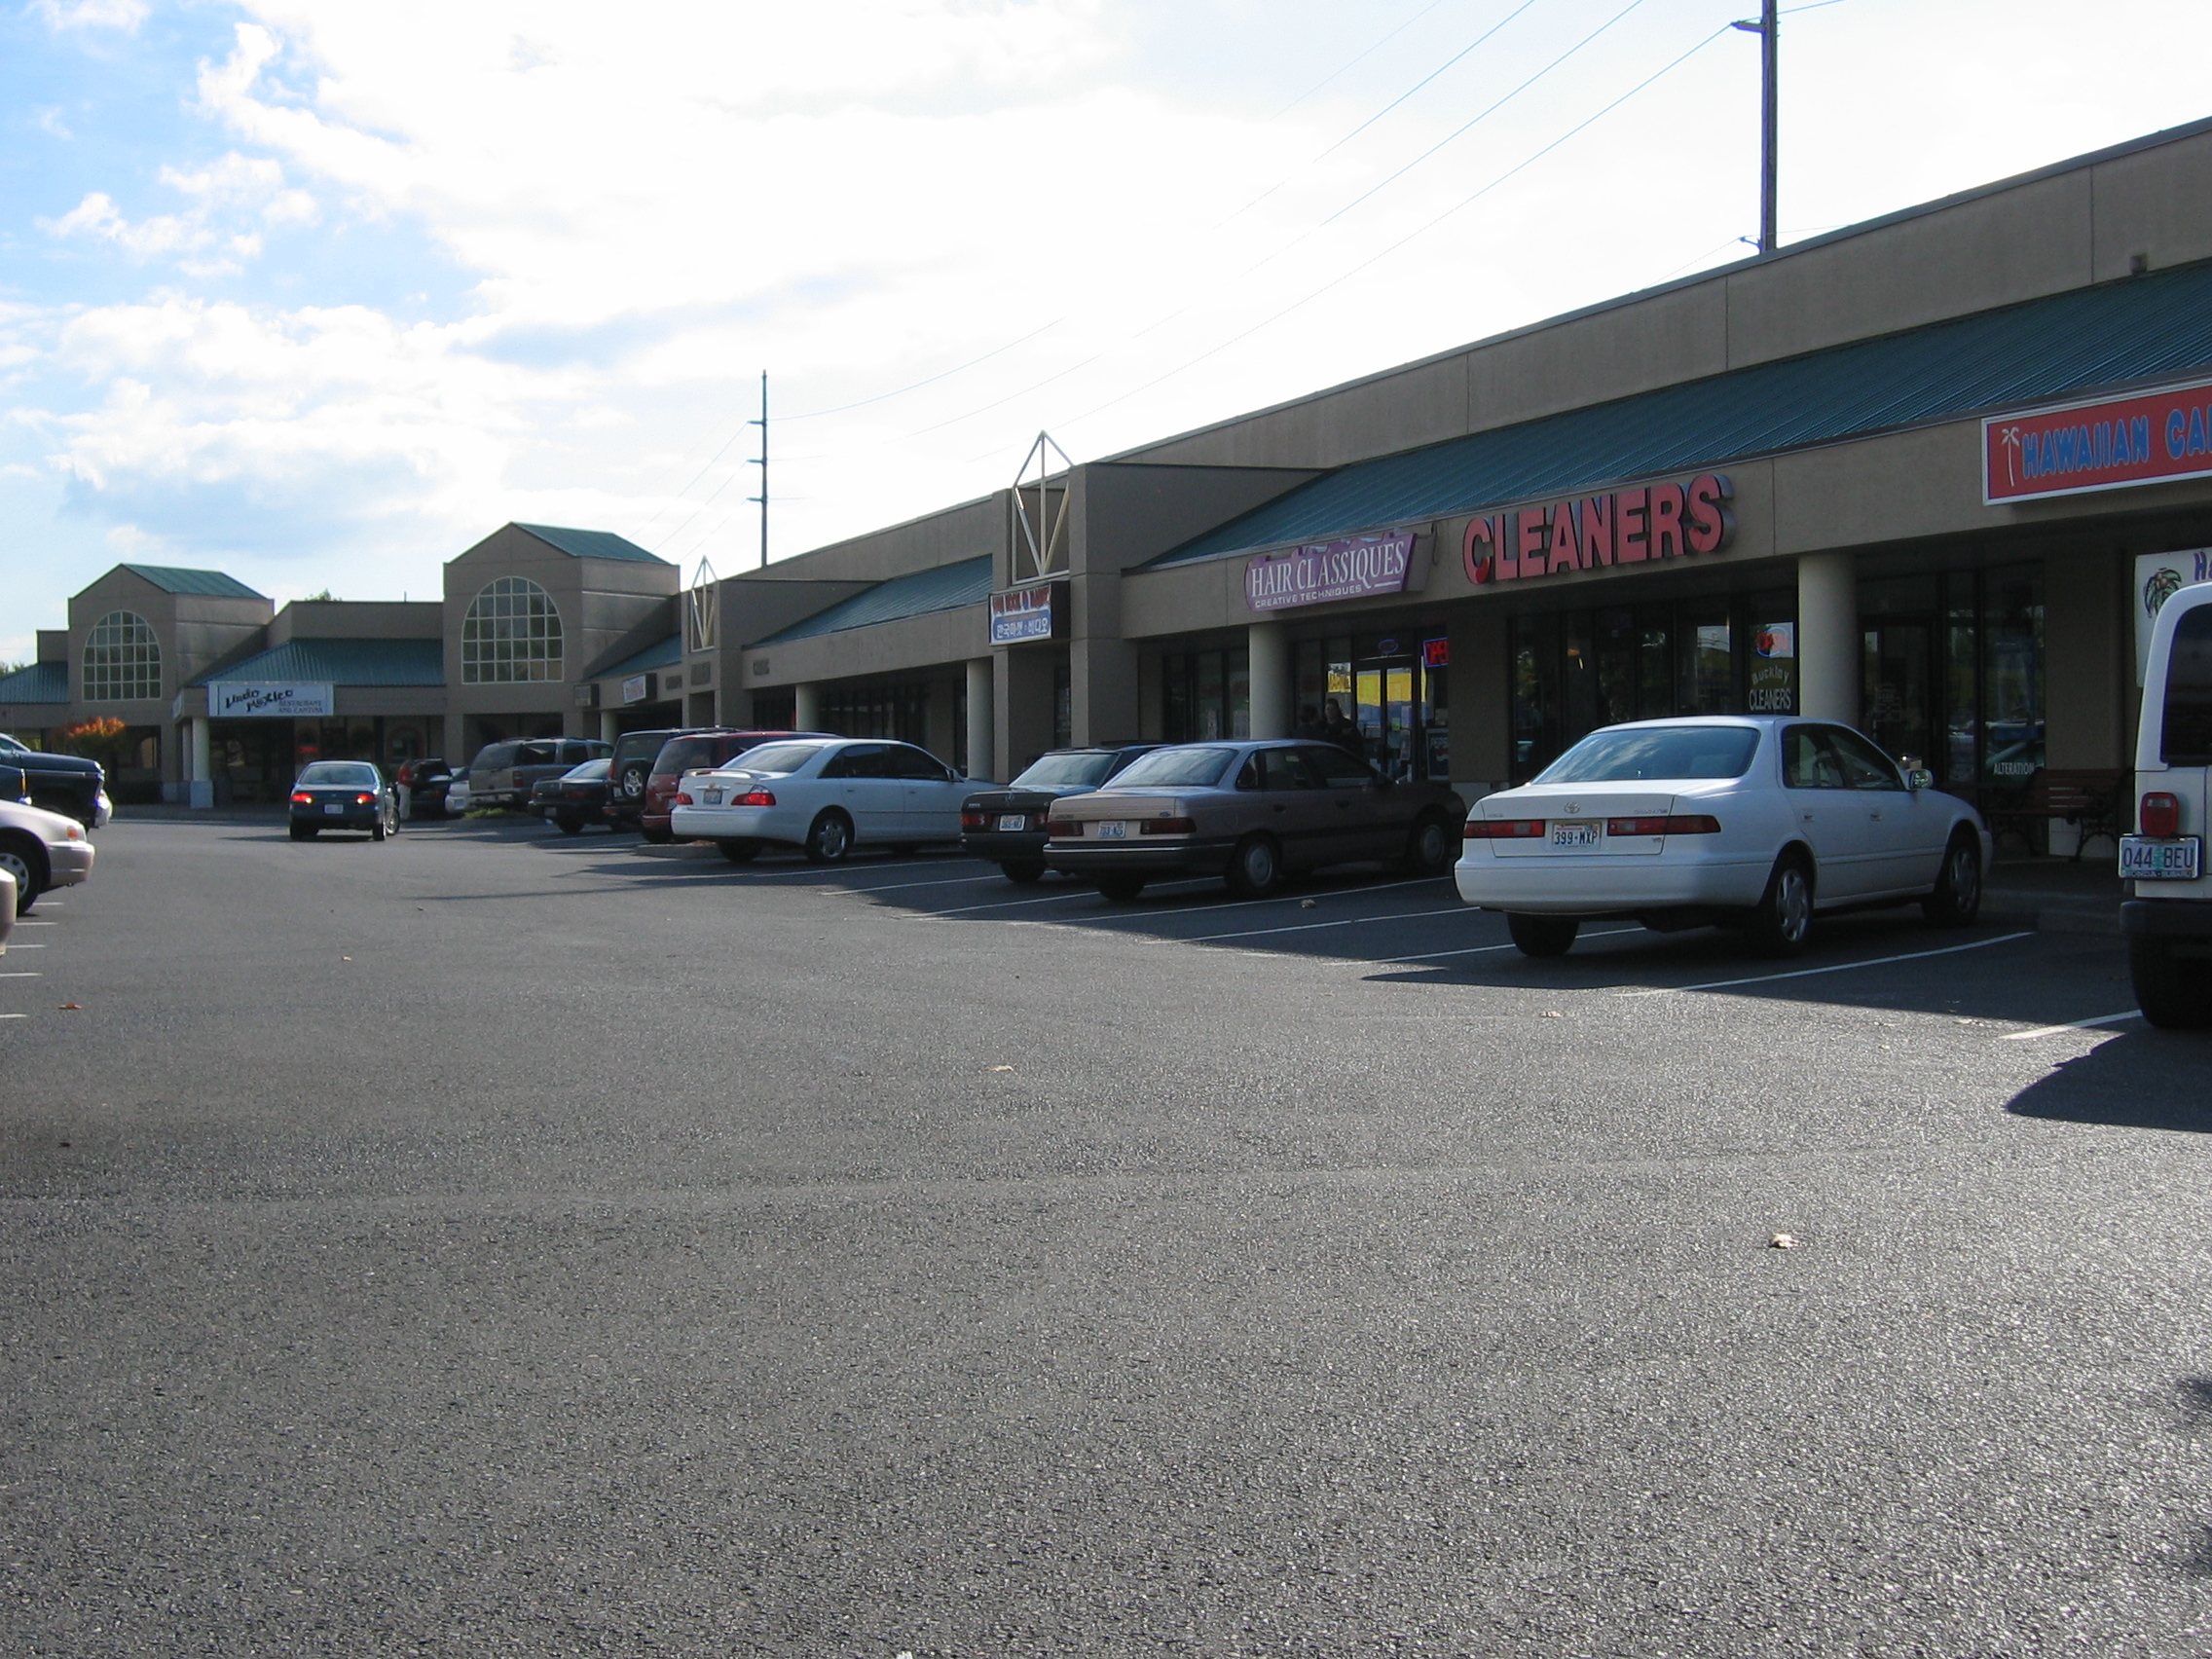 Bridgeport Retail Center